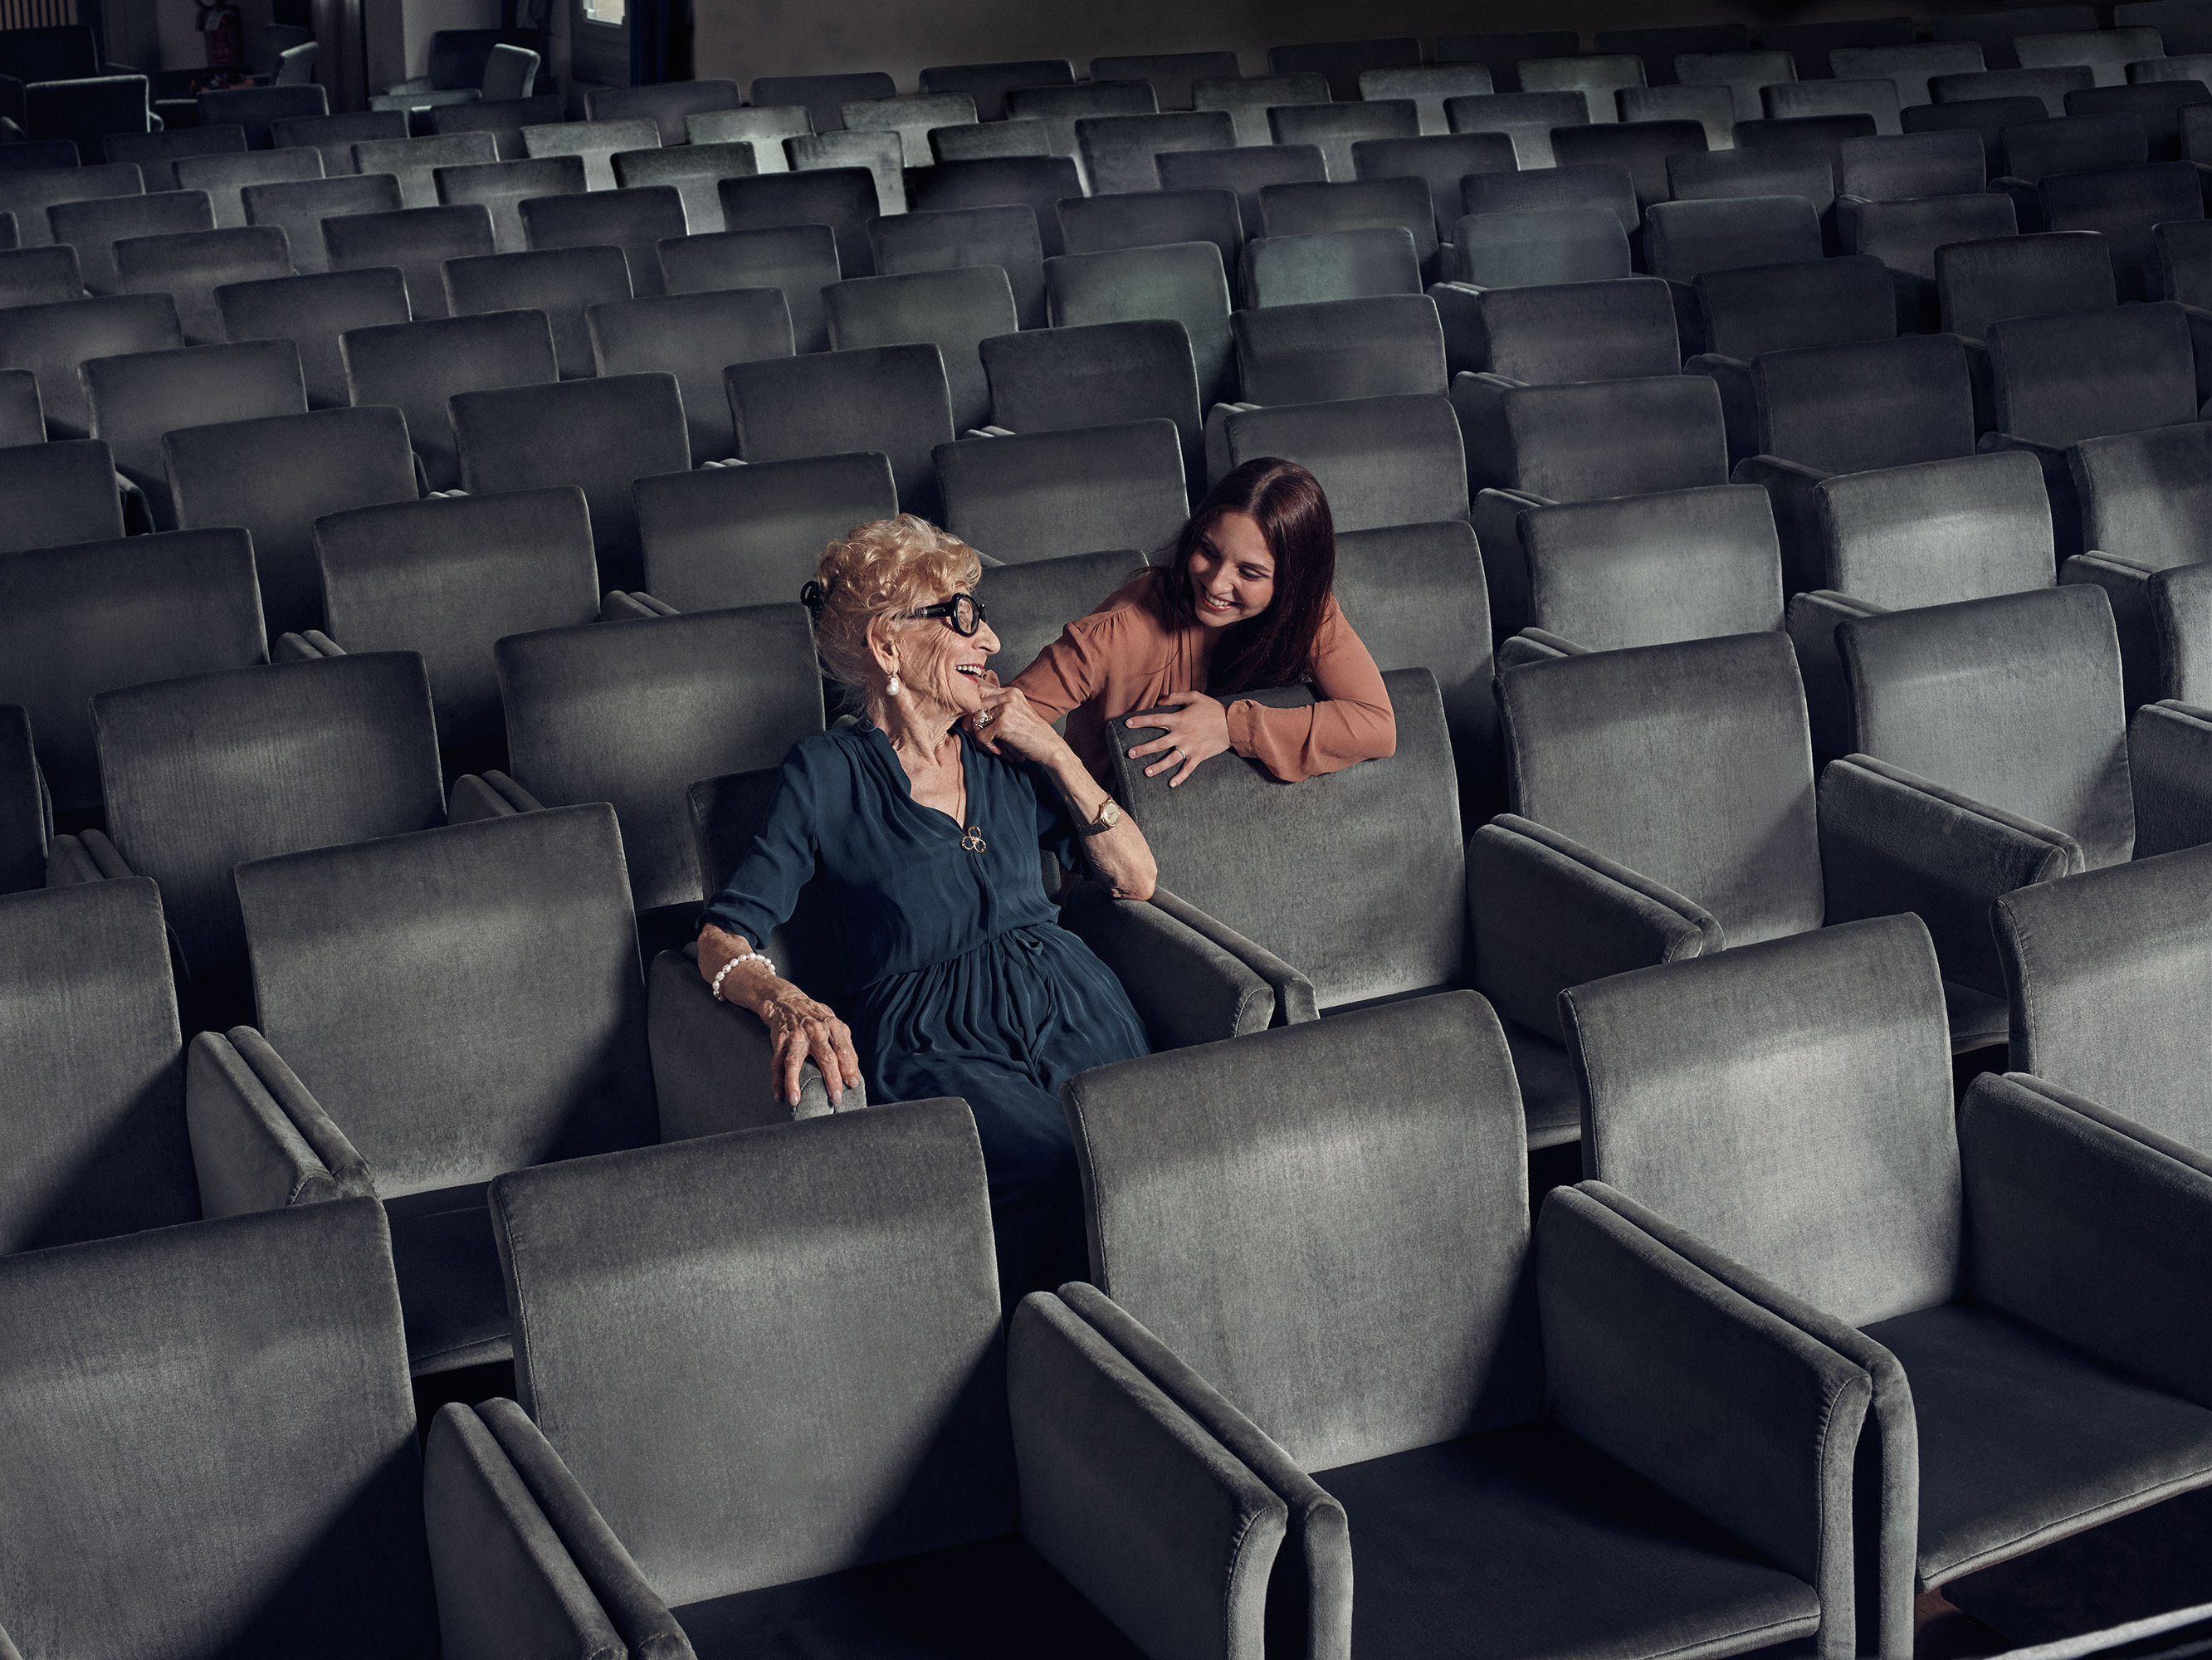 Teatro Civico Schio 2018/2019 | Piero Martinello | Armani | IO donna | Eva Orbetegli | Numerique Retouch Photo Retouching Studio